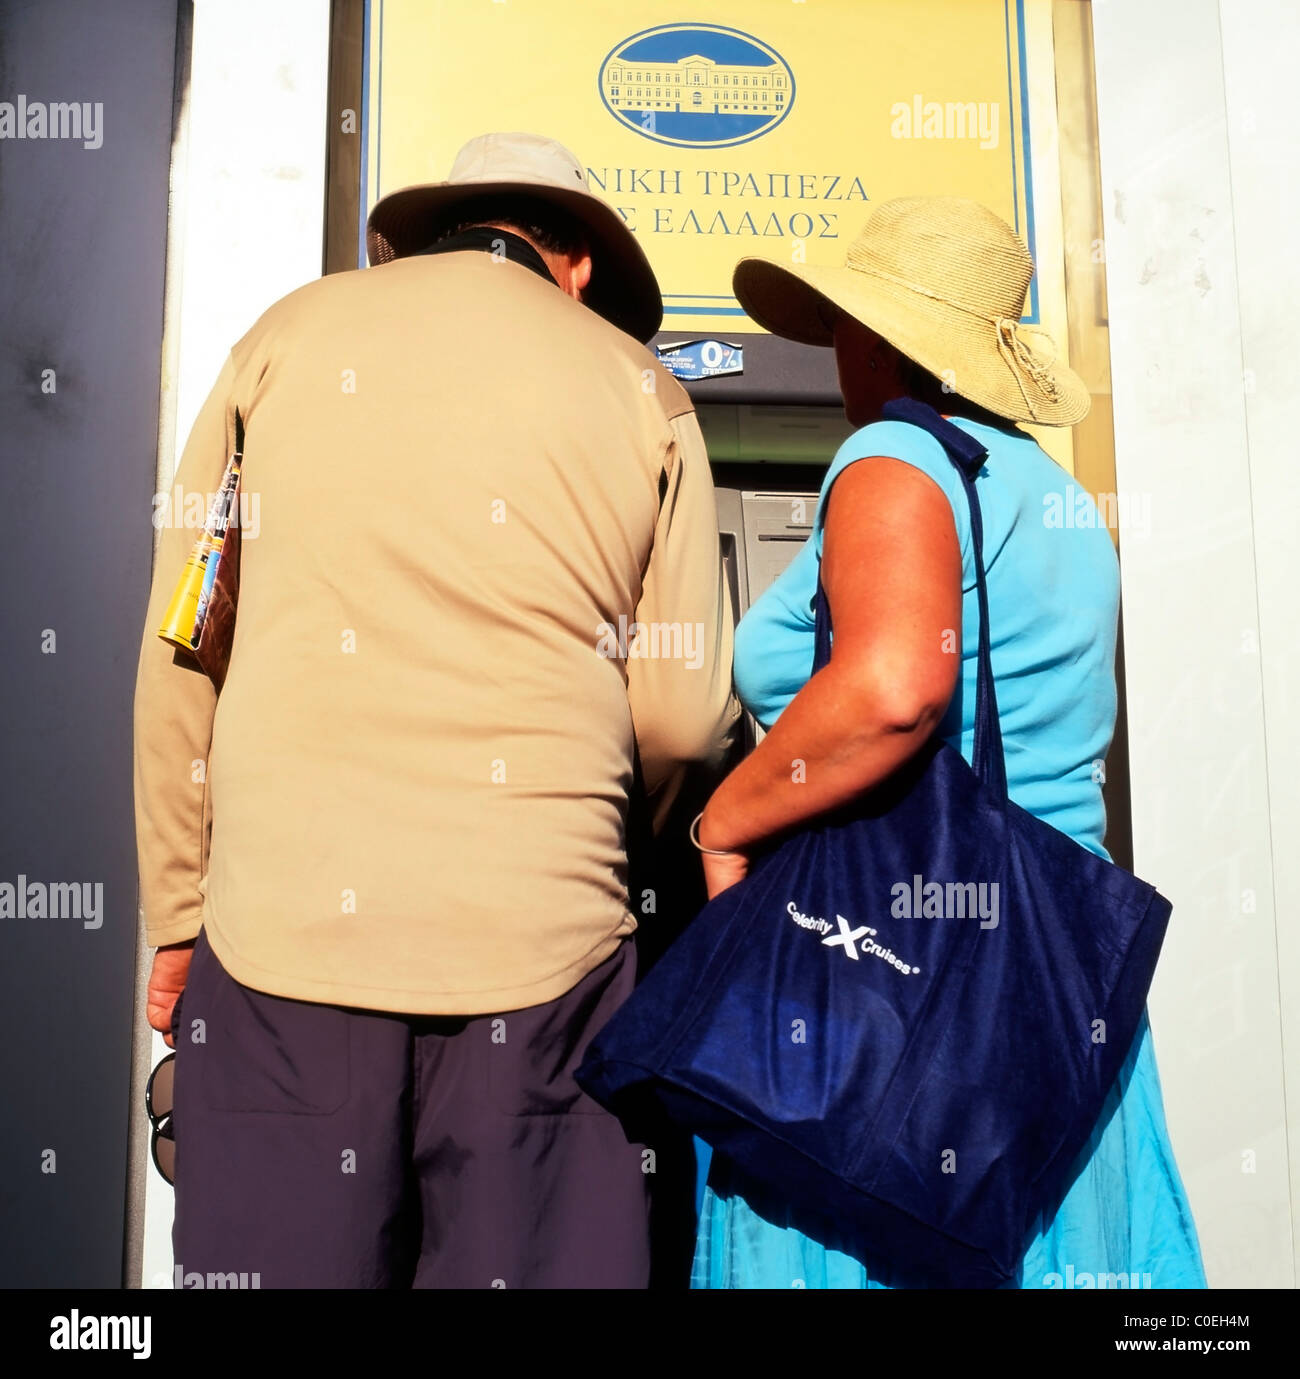 A middle-aged couple tourists getting money out from an ATM cash machine Santorini, Greek Islands, Greece  KATHY Stock Photo